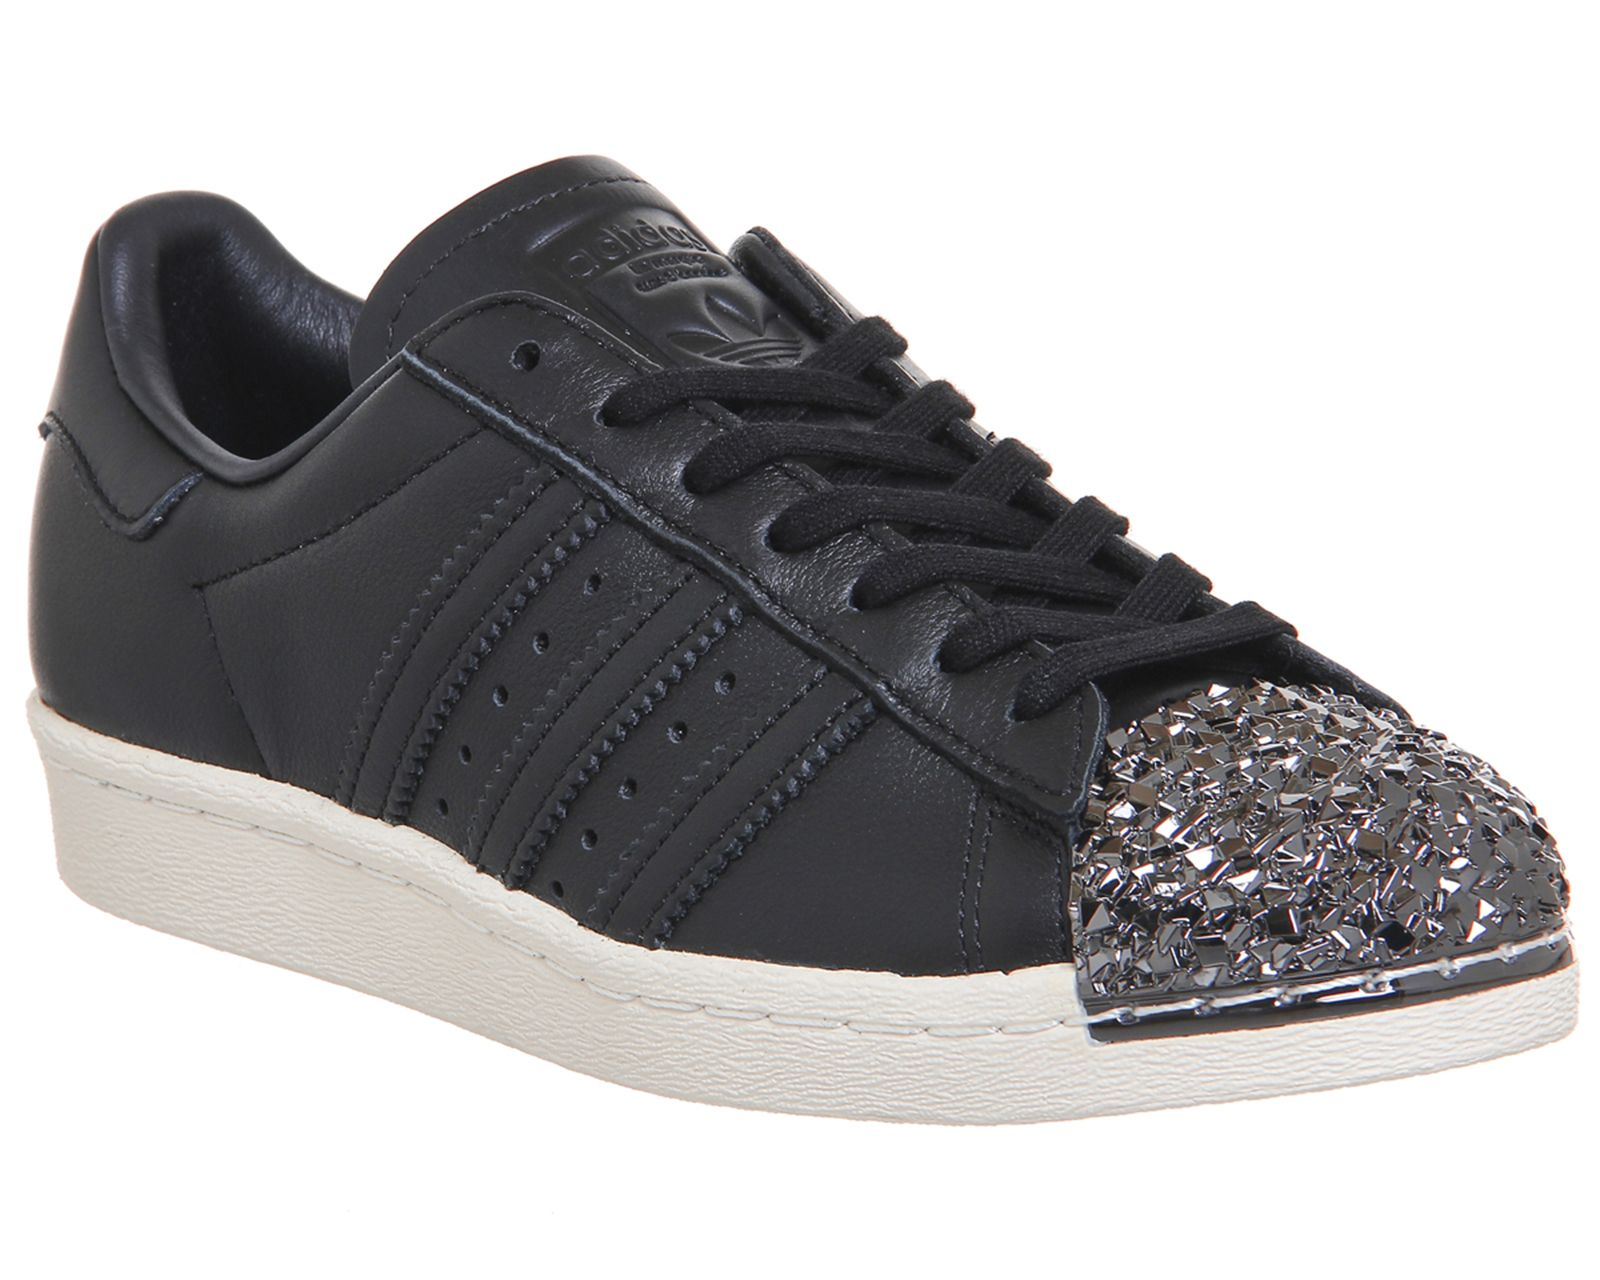 competitive price 0c8c9 c47e7 Adidas Superstar 80s Metal Toe Black Shattered Mirror 3d